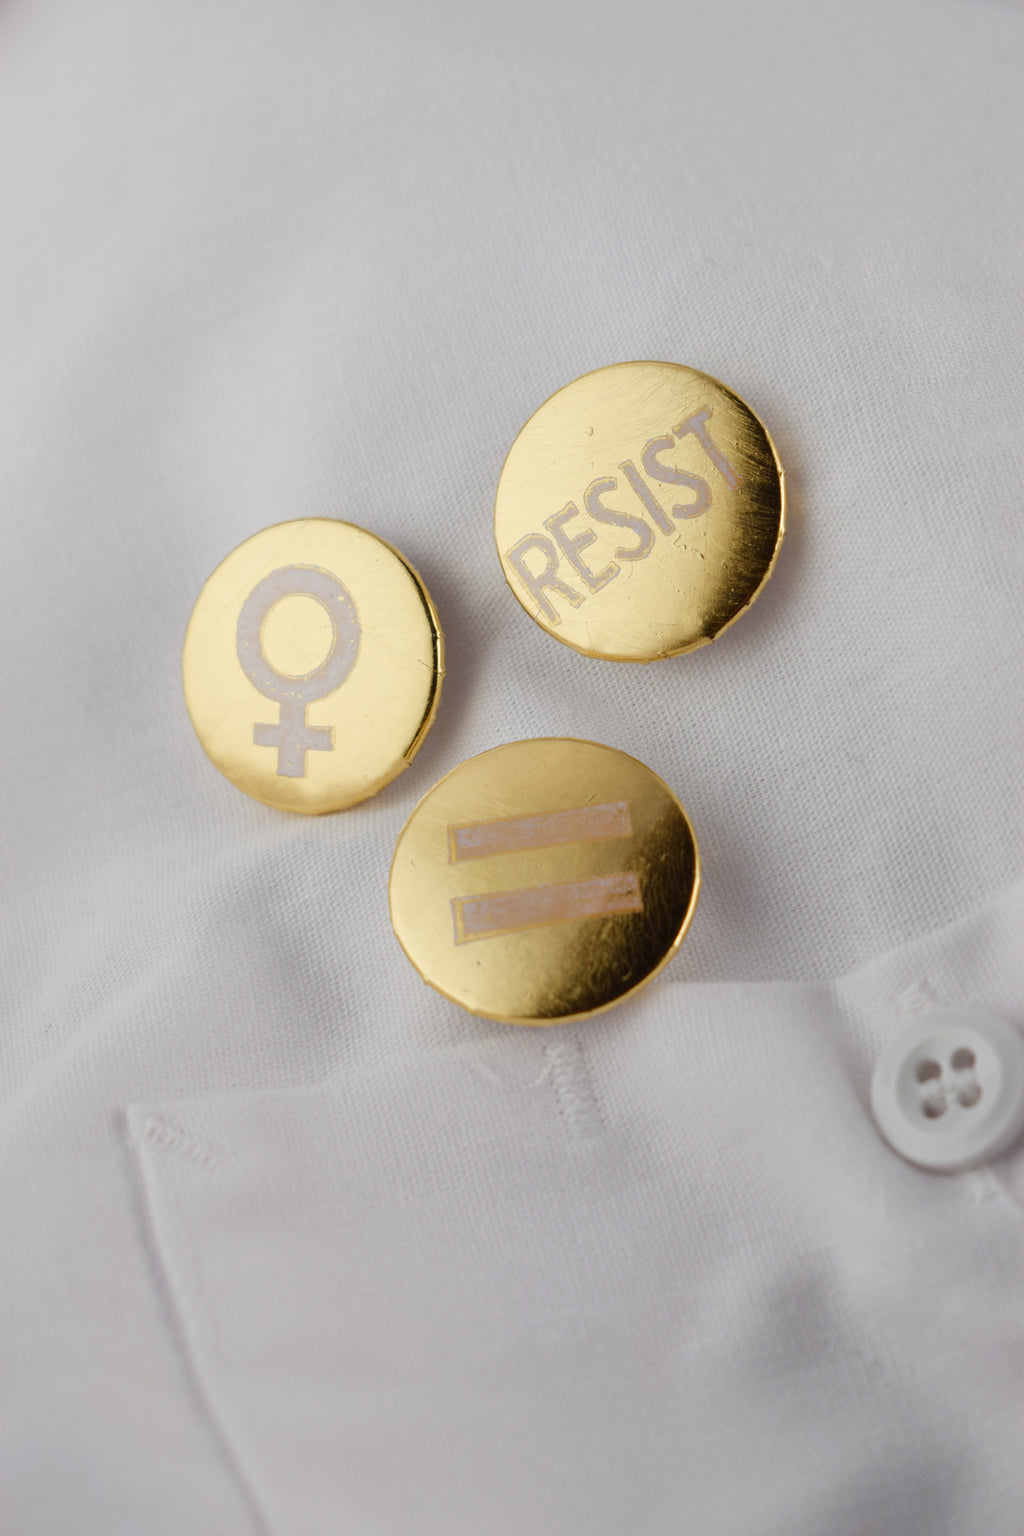 Three gold protest buttons